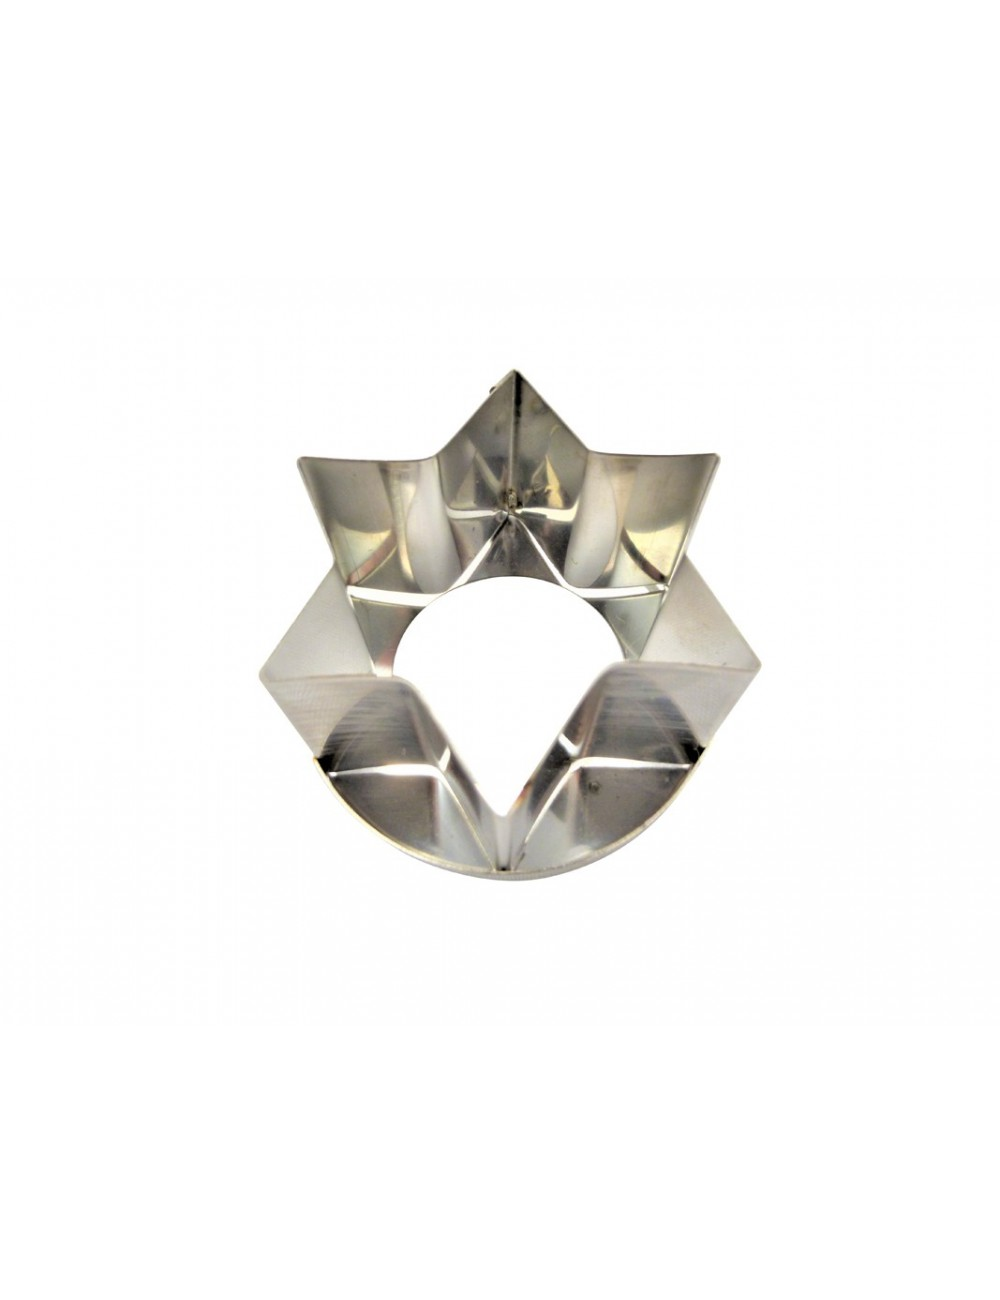 STAINLESS STEEL CUTTER - STAR-SHAPED